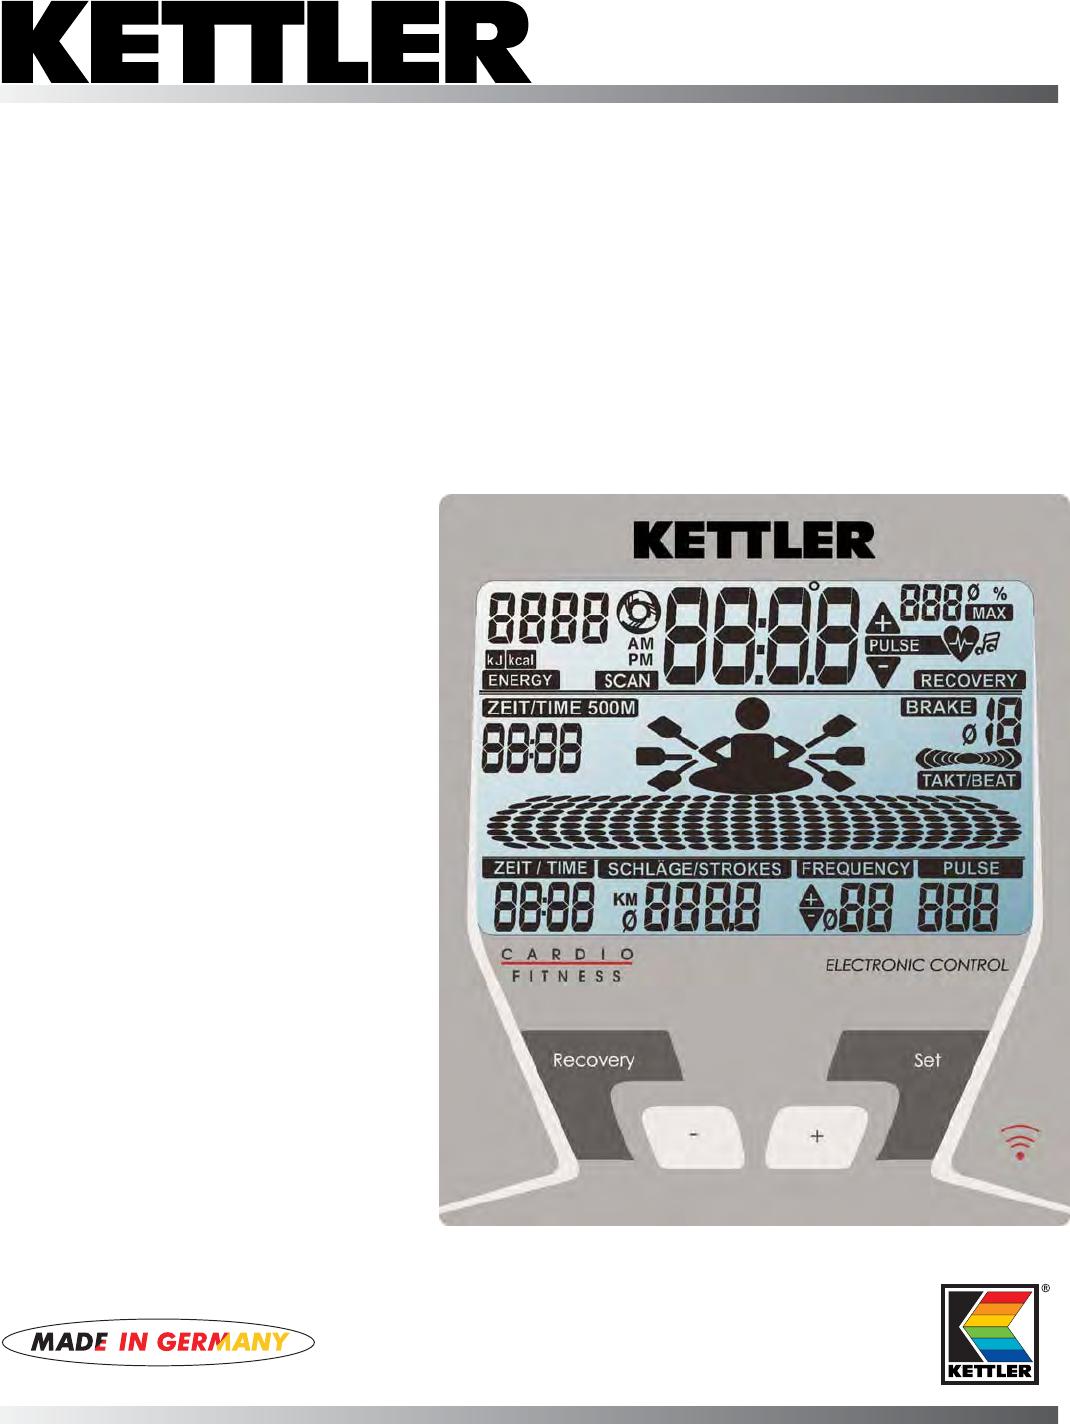 Kettler Rowing Machine St2520 64 User Guide